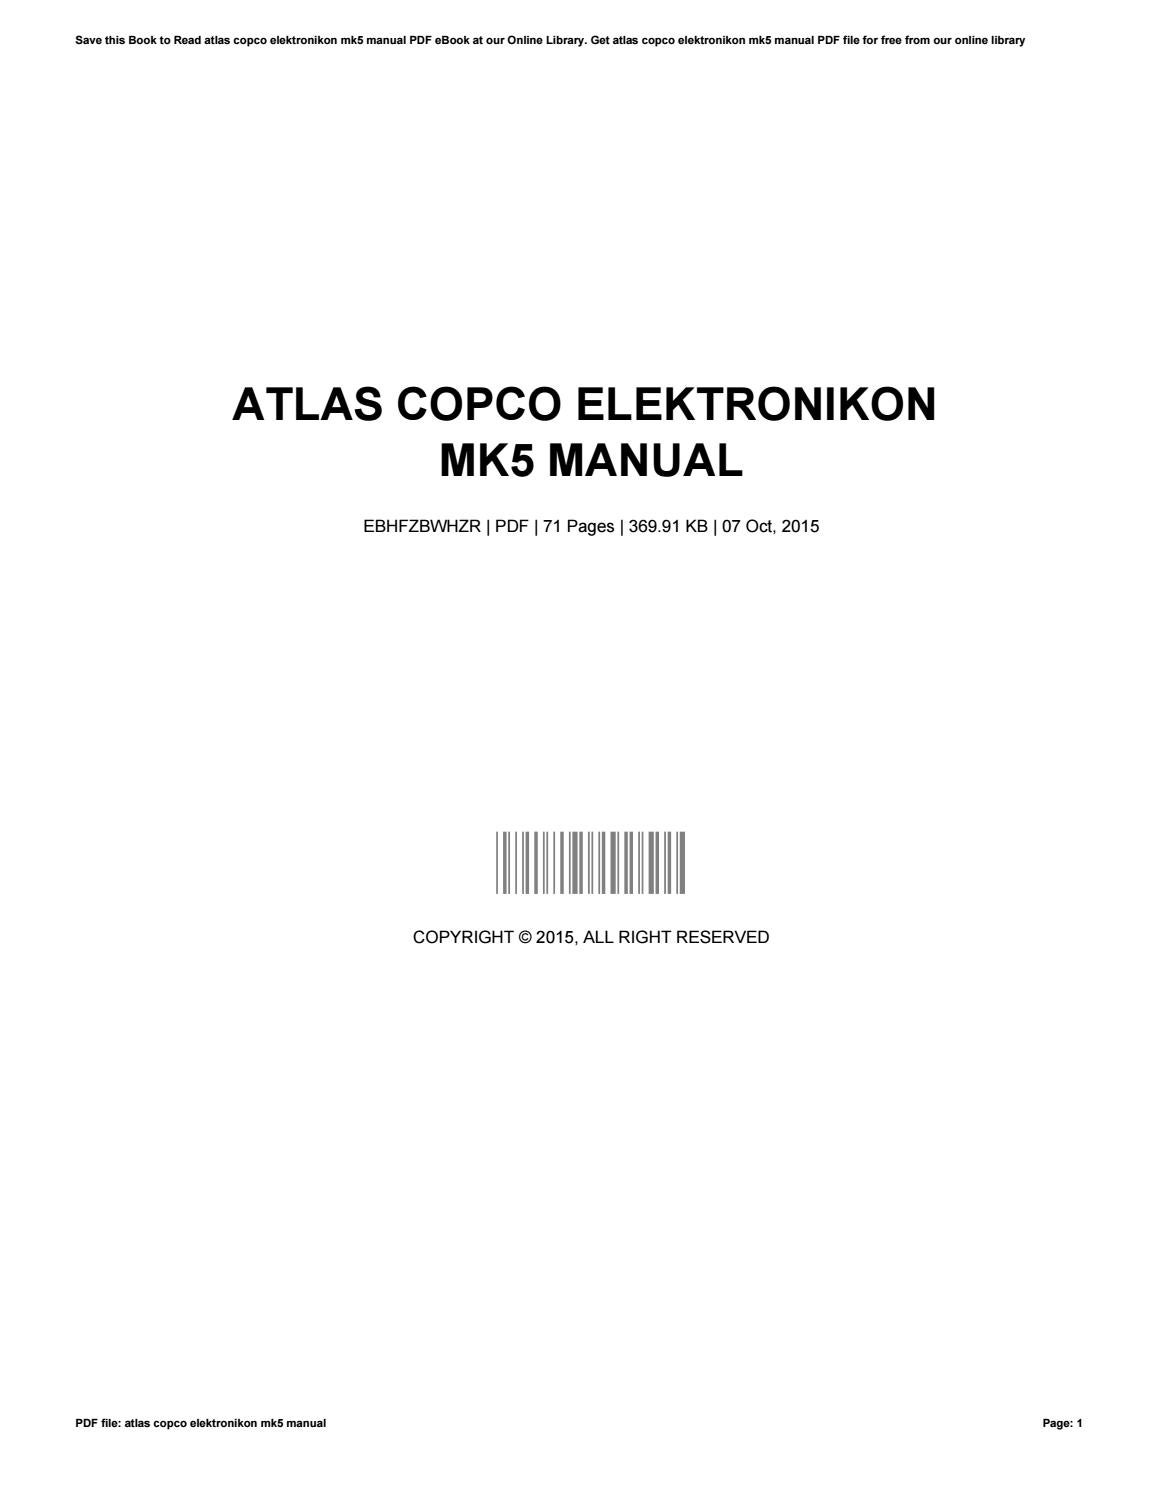 atlas copco elektronikon mk5 manual by nancyrice3876 issuu. Black Bedroom Furniture Sets. Home Design Ideas